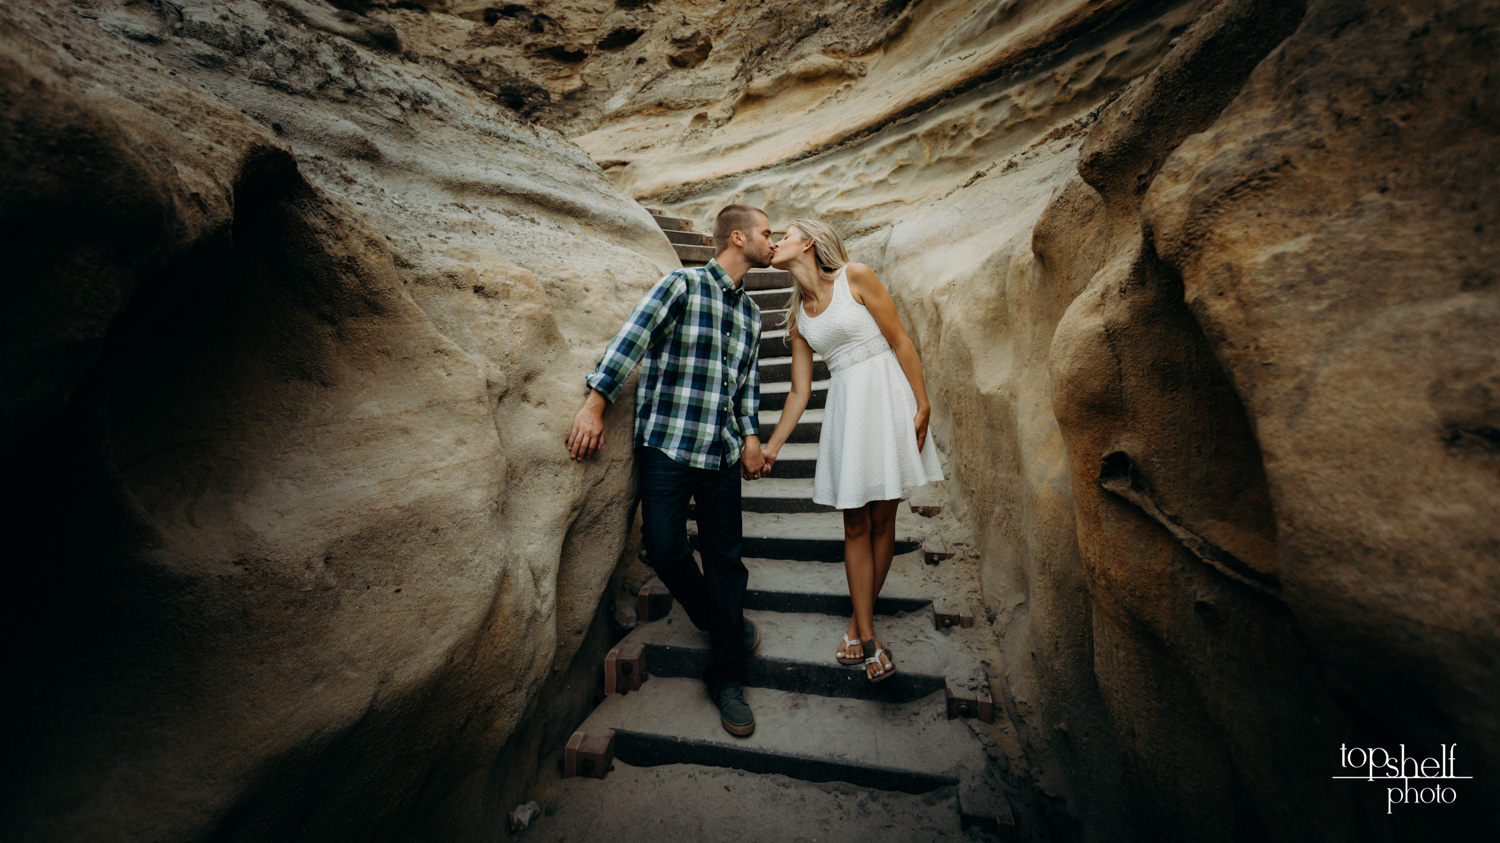 torrey-pines-beach-engagement-san-diego-top-shelf-photo-3.jpg